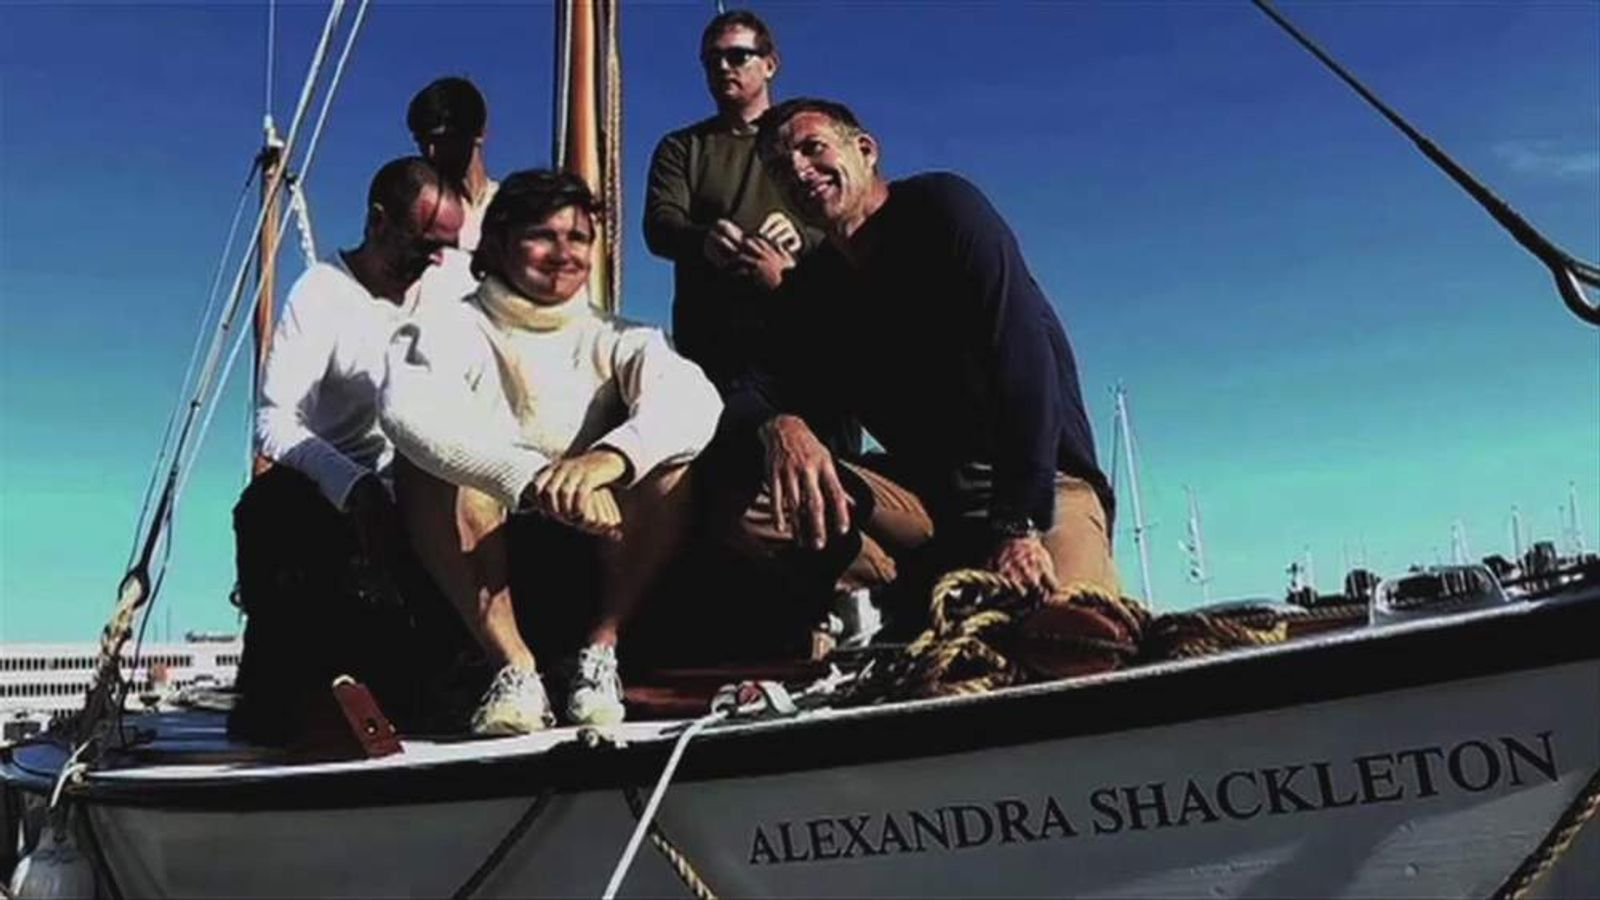 The Alexandra Shackleton crew